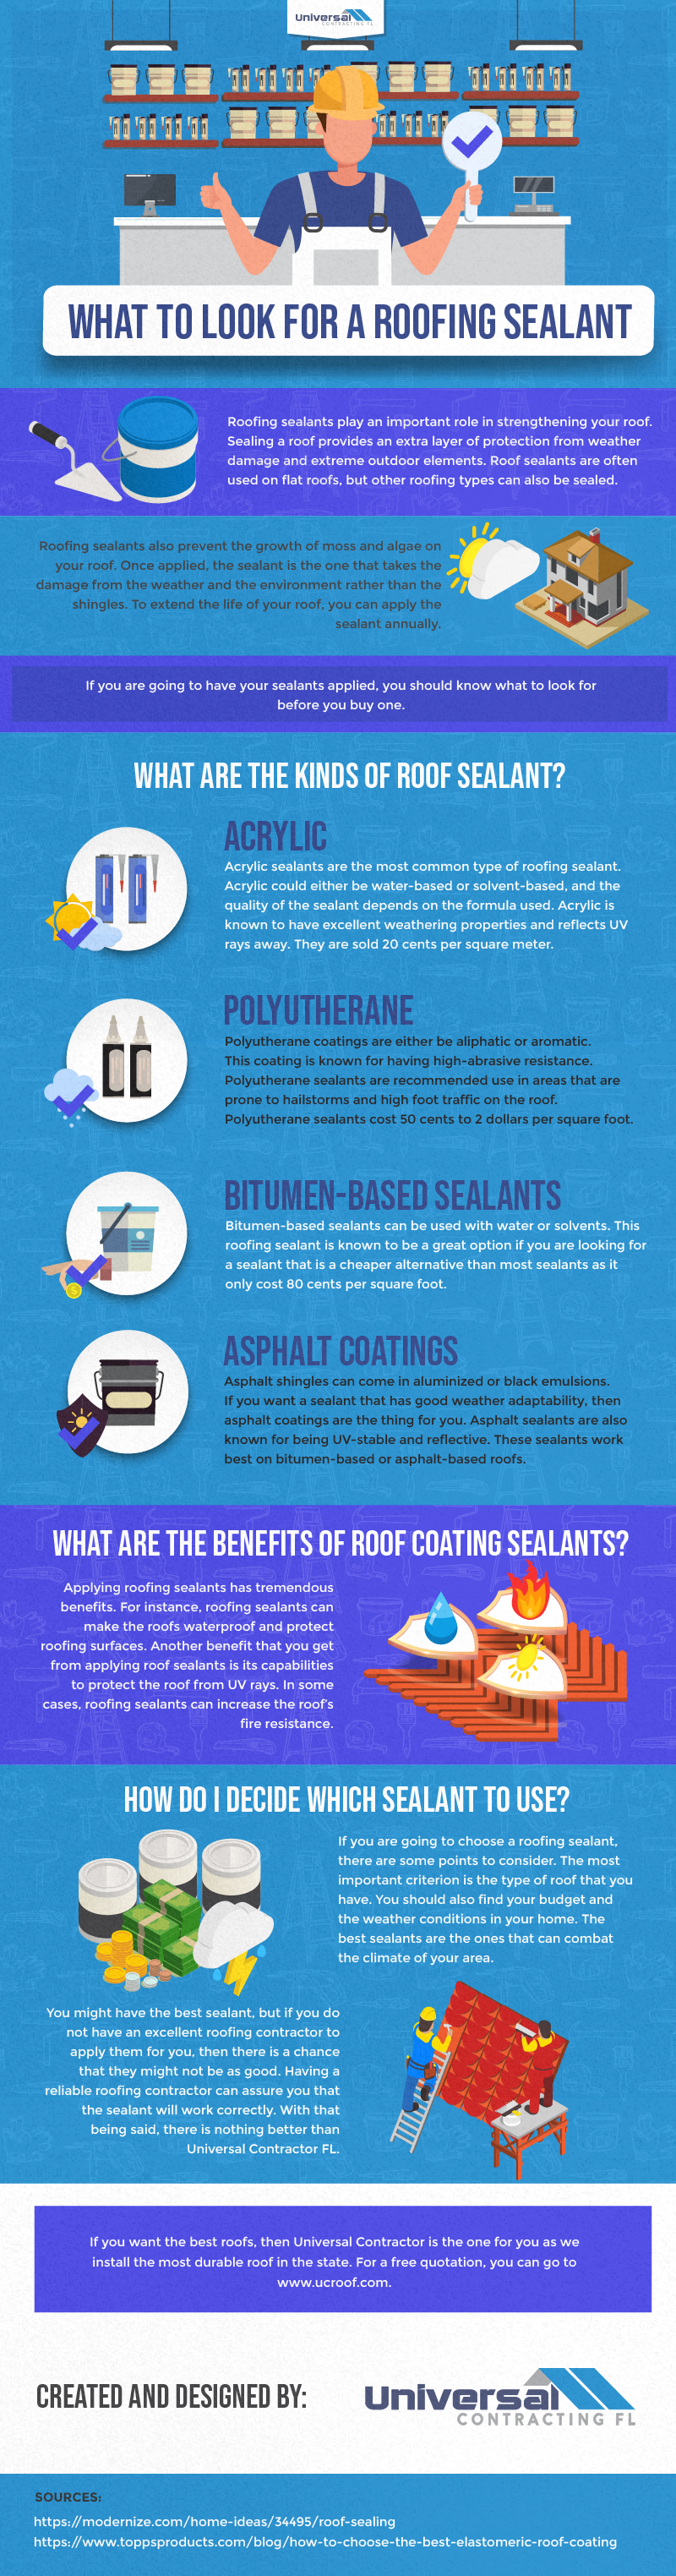 What to Look for a Roofing Sealant - Infographic